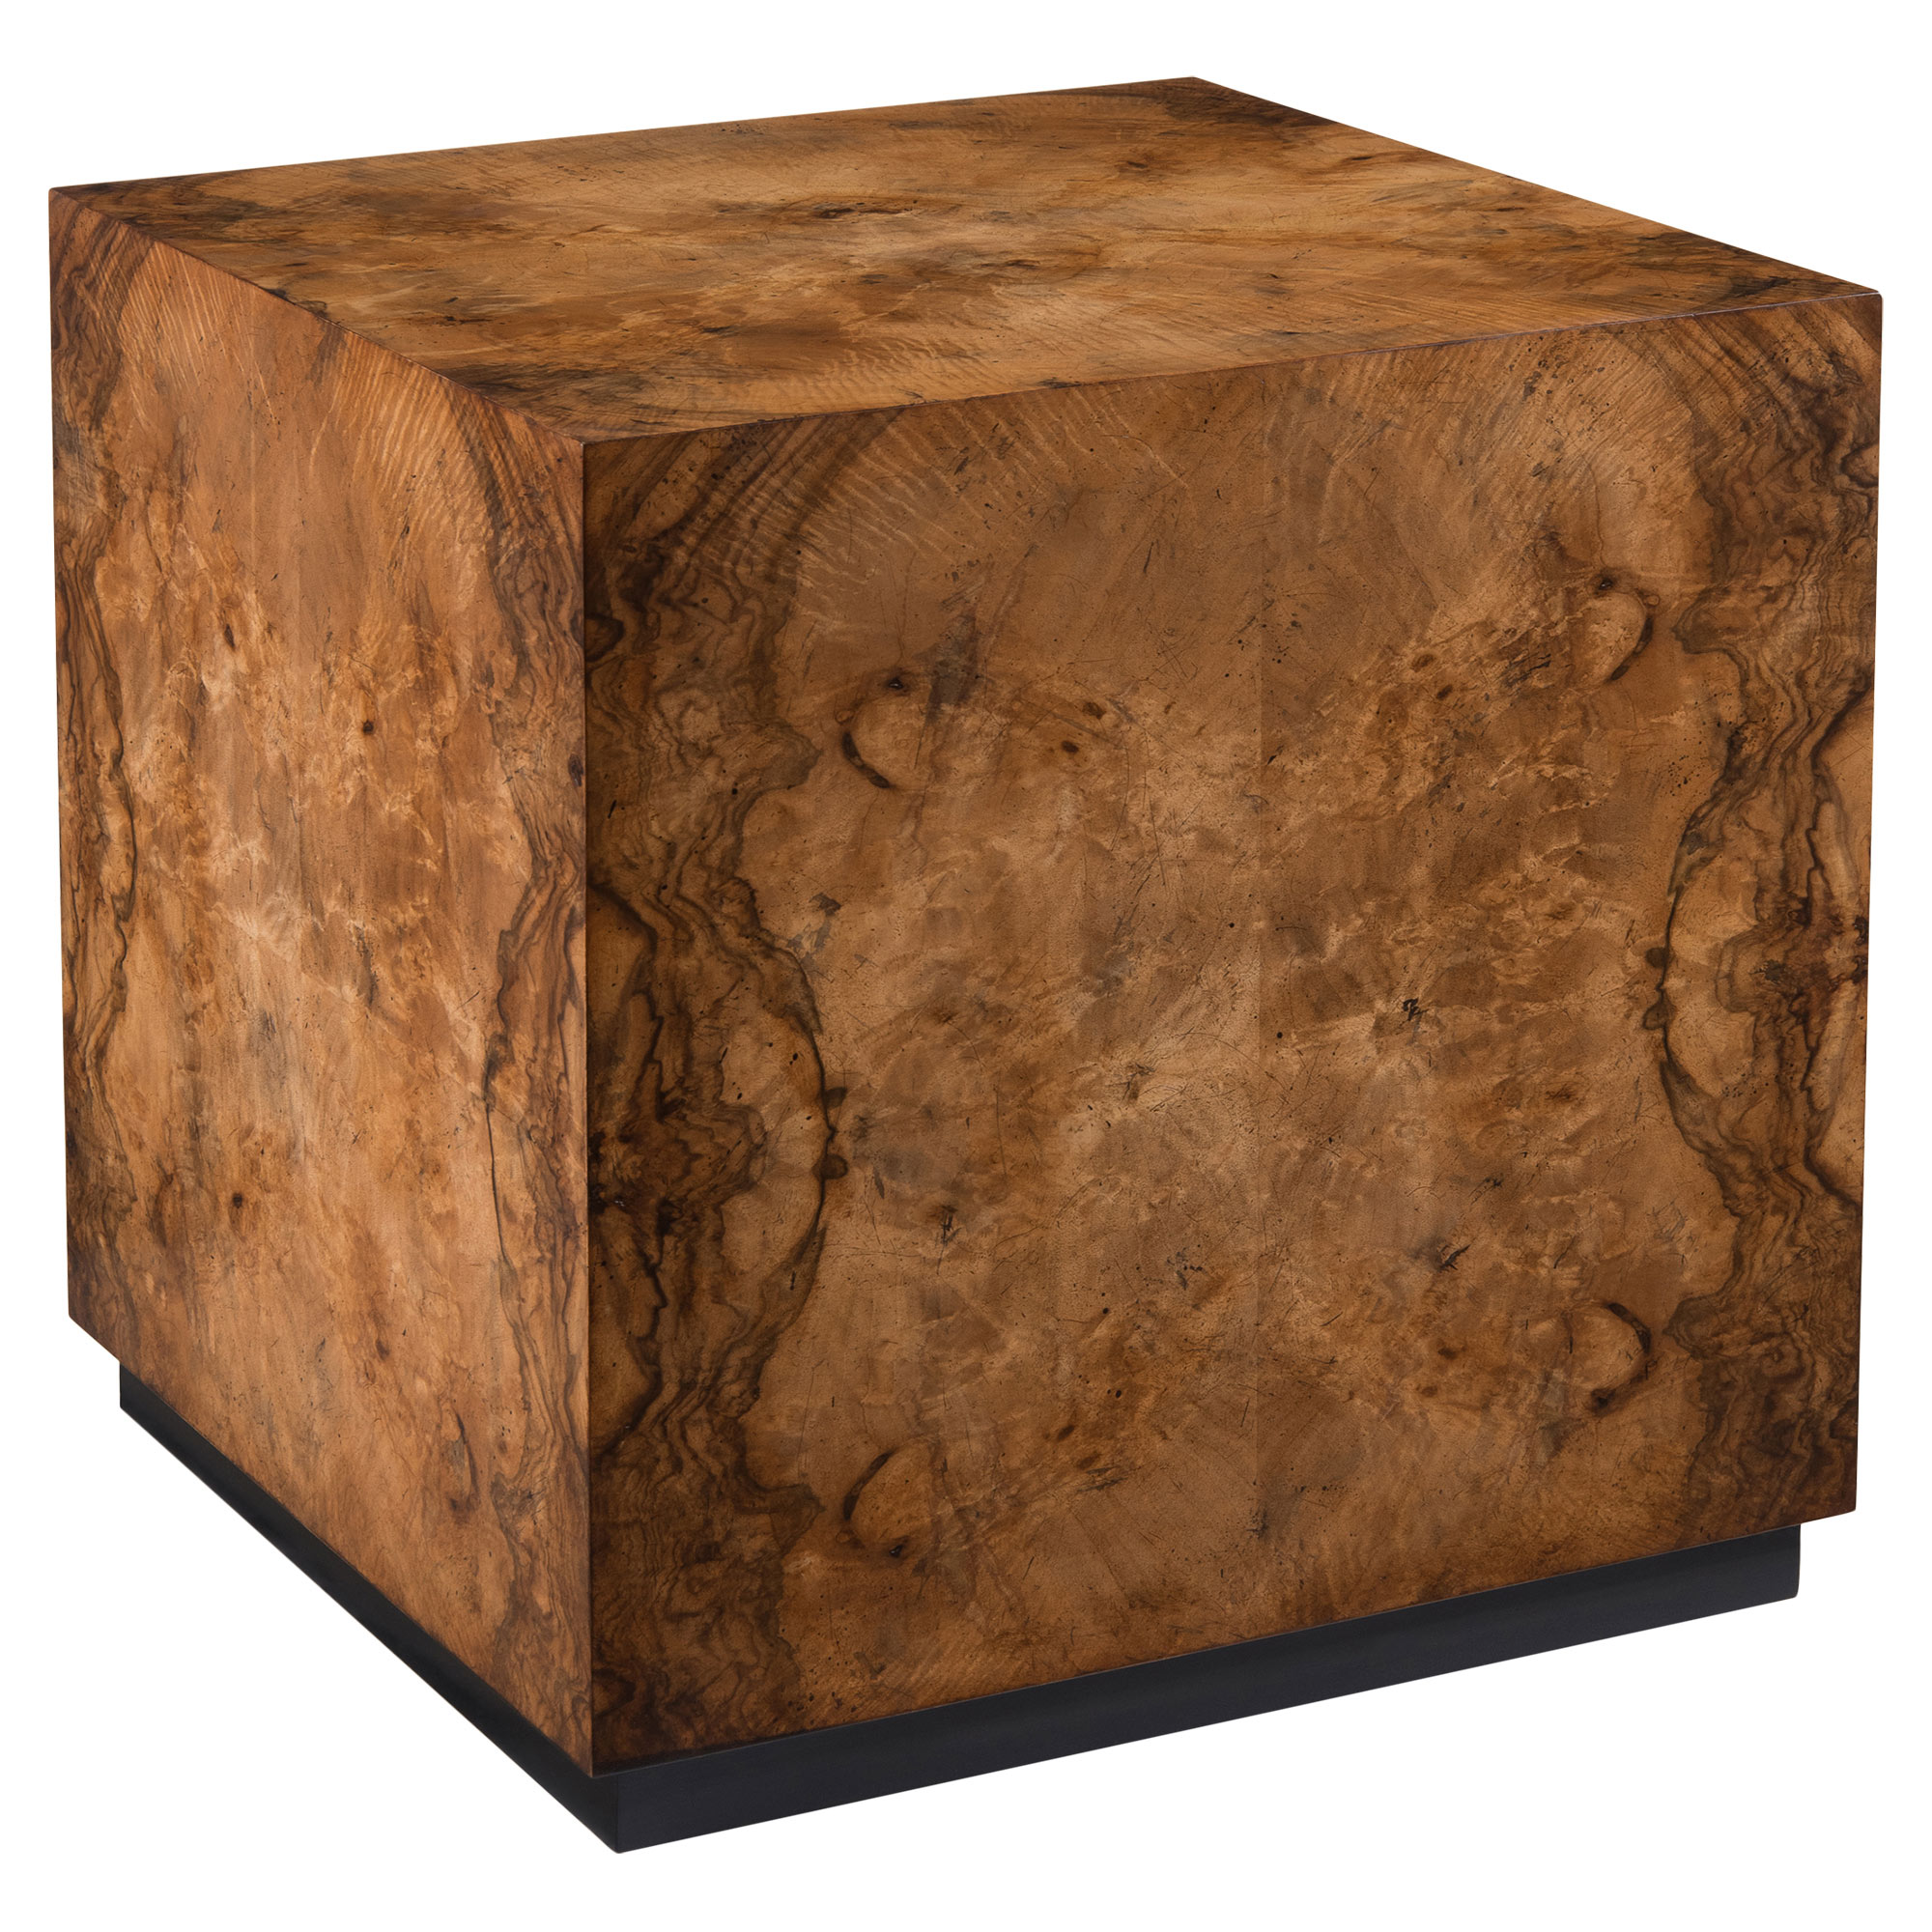 Kelvis Rustic Modern Walnut Burl Cube Coffee Table